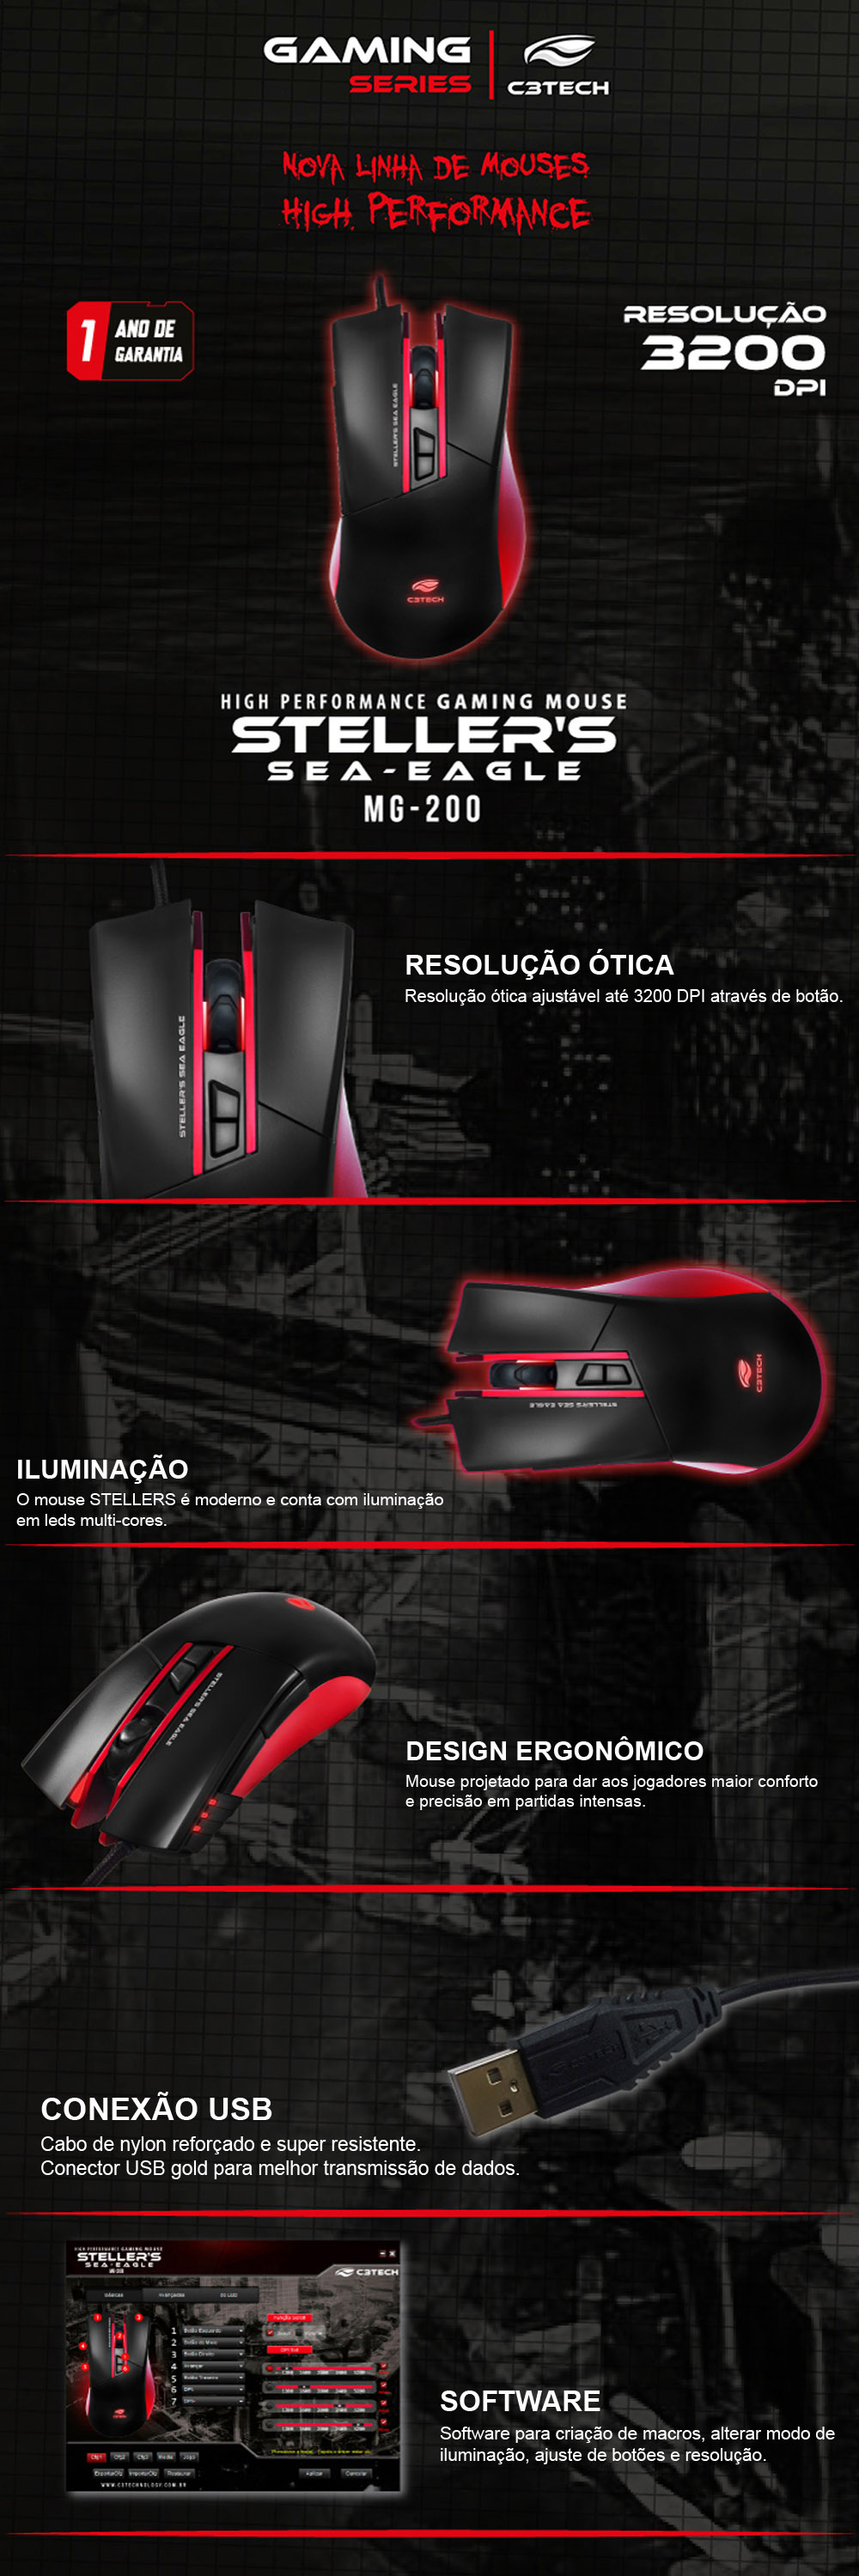 Mouse Optico Usb Gamer C3Tech Stellers Mg-200 Rd | Offcomp.com.br